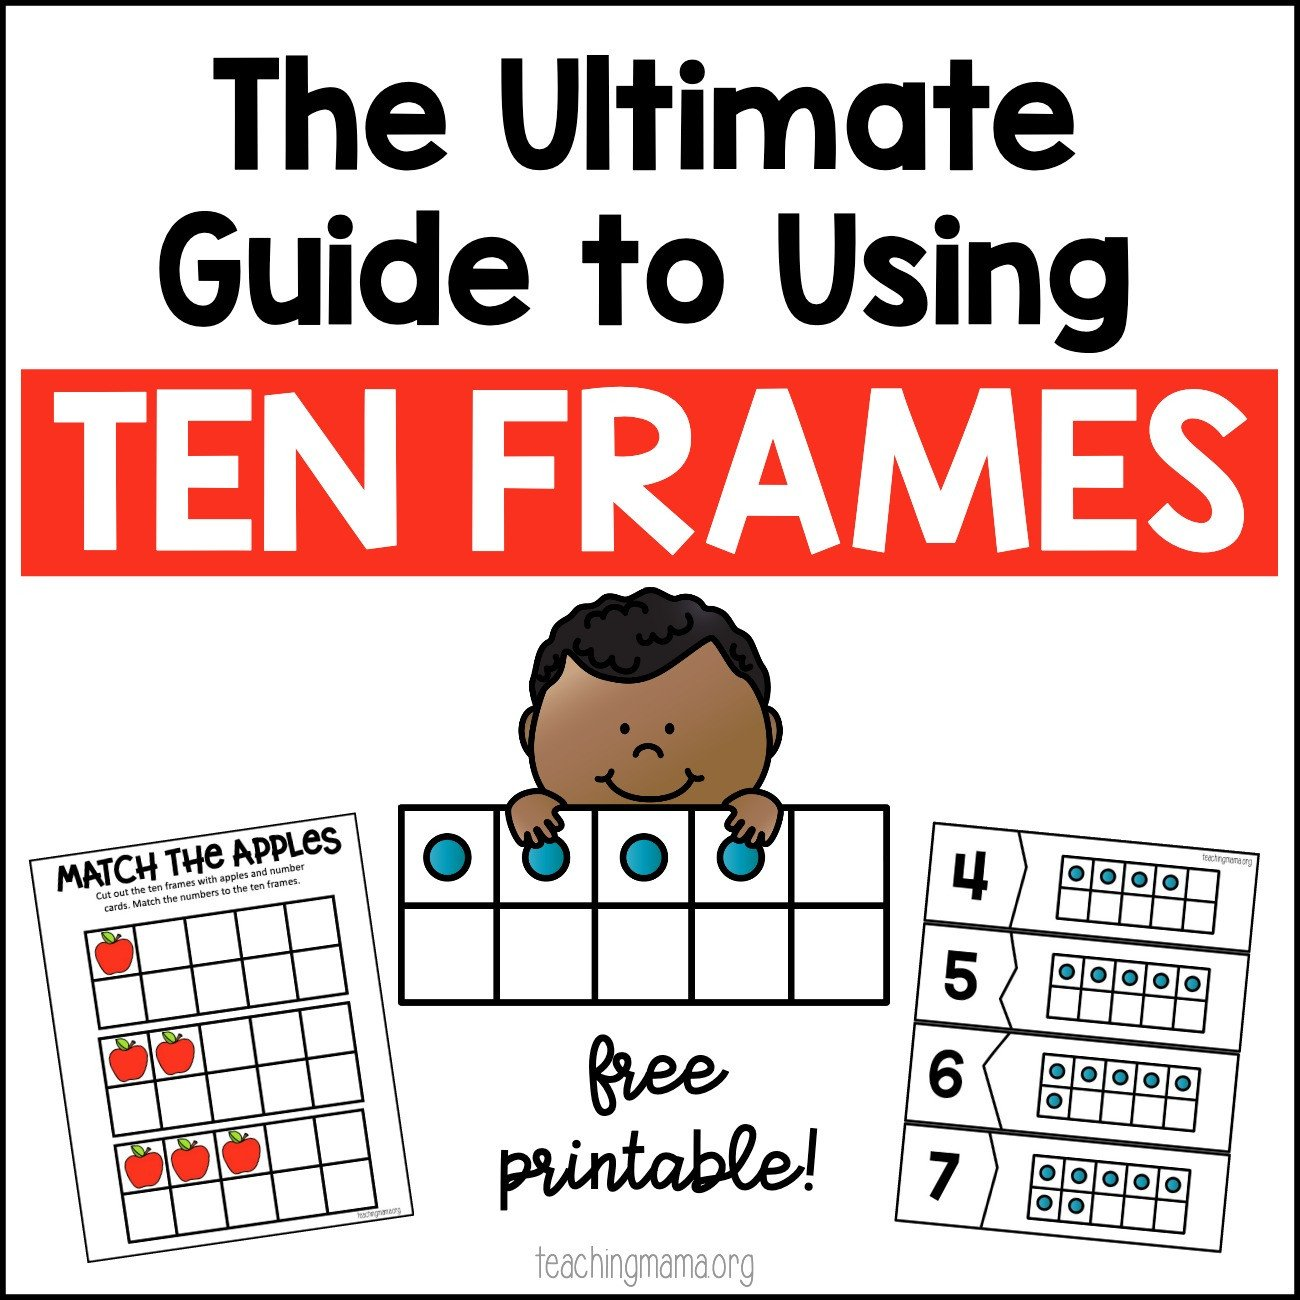 Ten Frames Kindergarten Worksheets the Ultimate Guide to Using Ten Frames